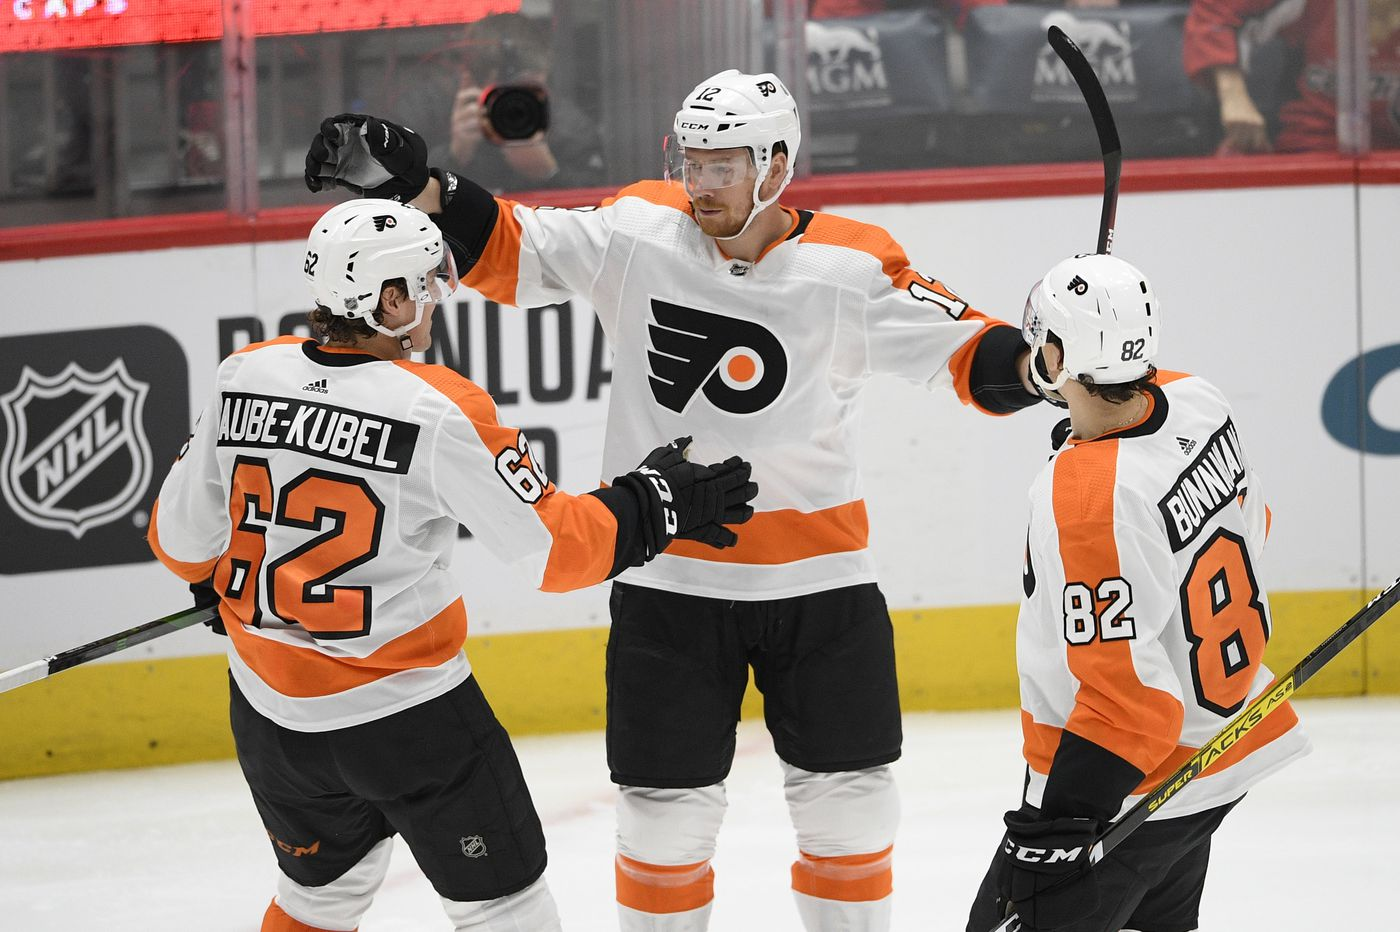 Sean Couturier, Claude Giroux, Nic Aube-Kubel spark Flyers to stunningly easy win over powerful Capitals